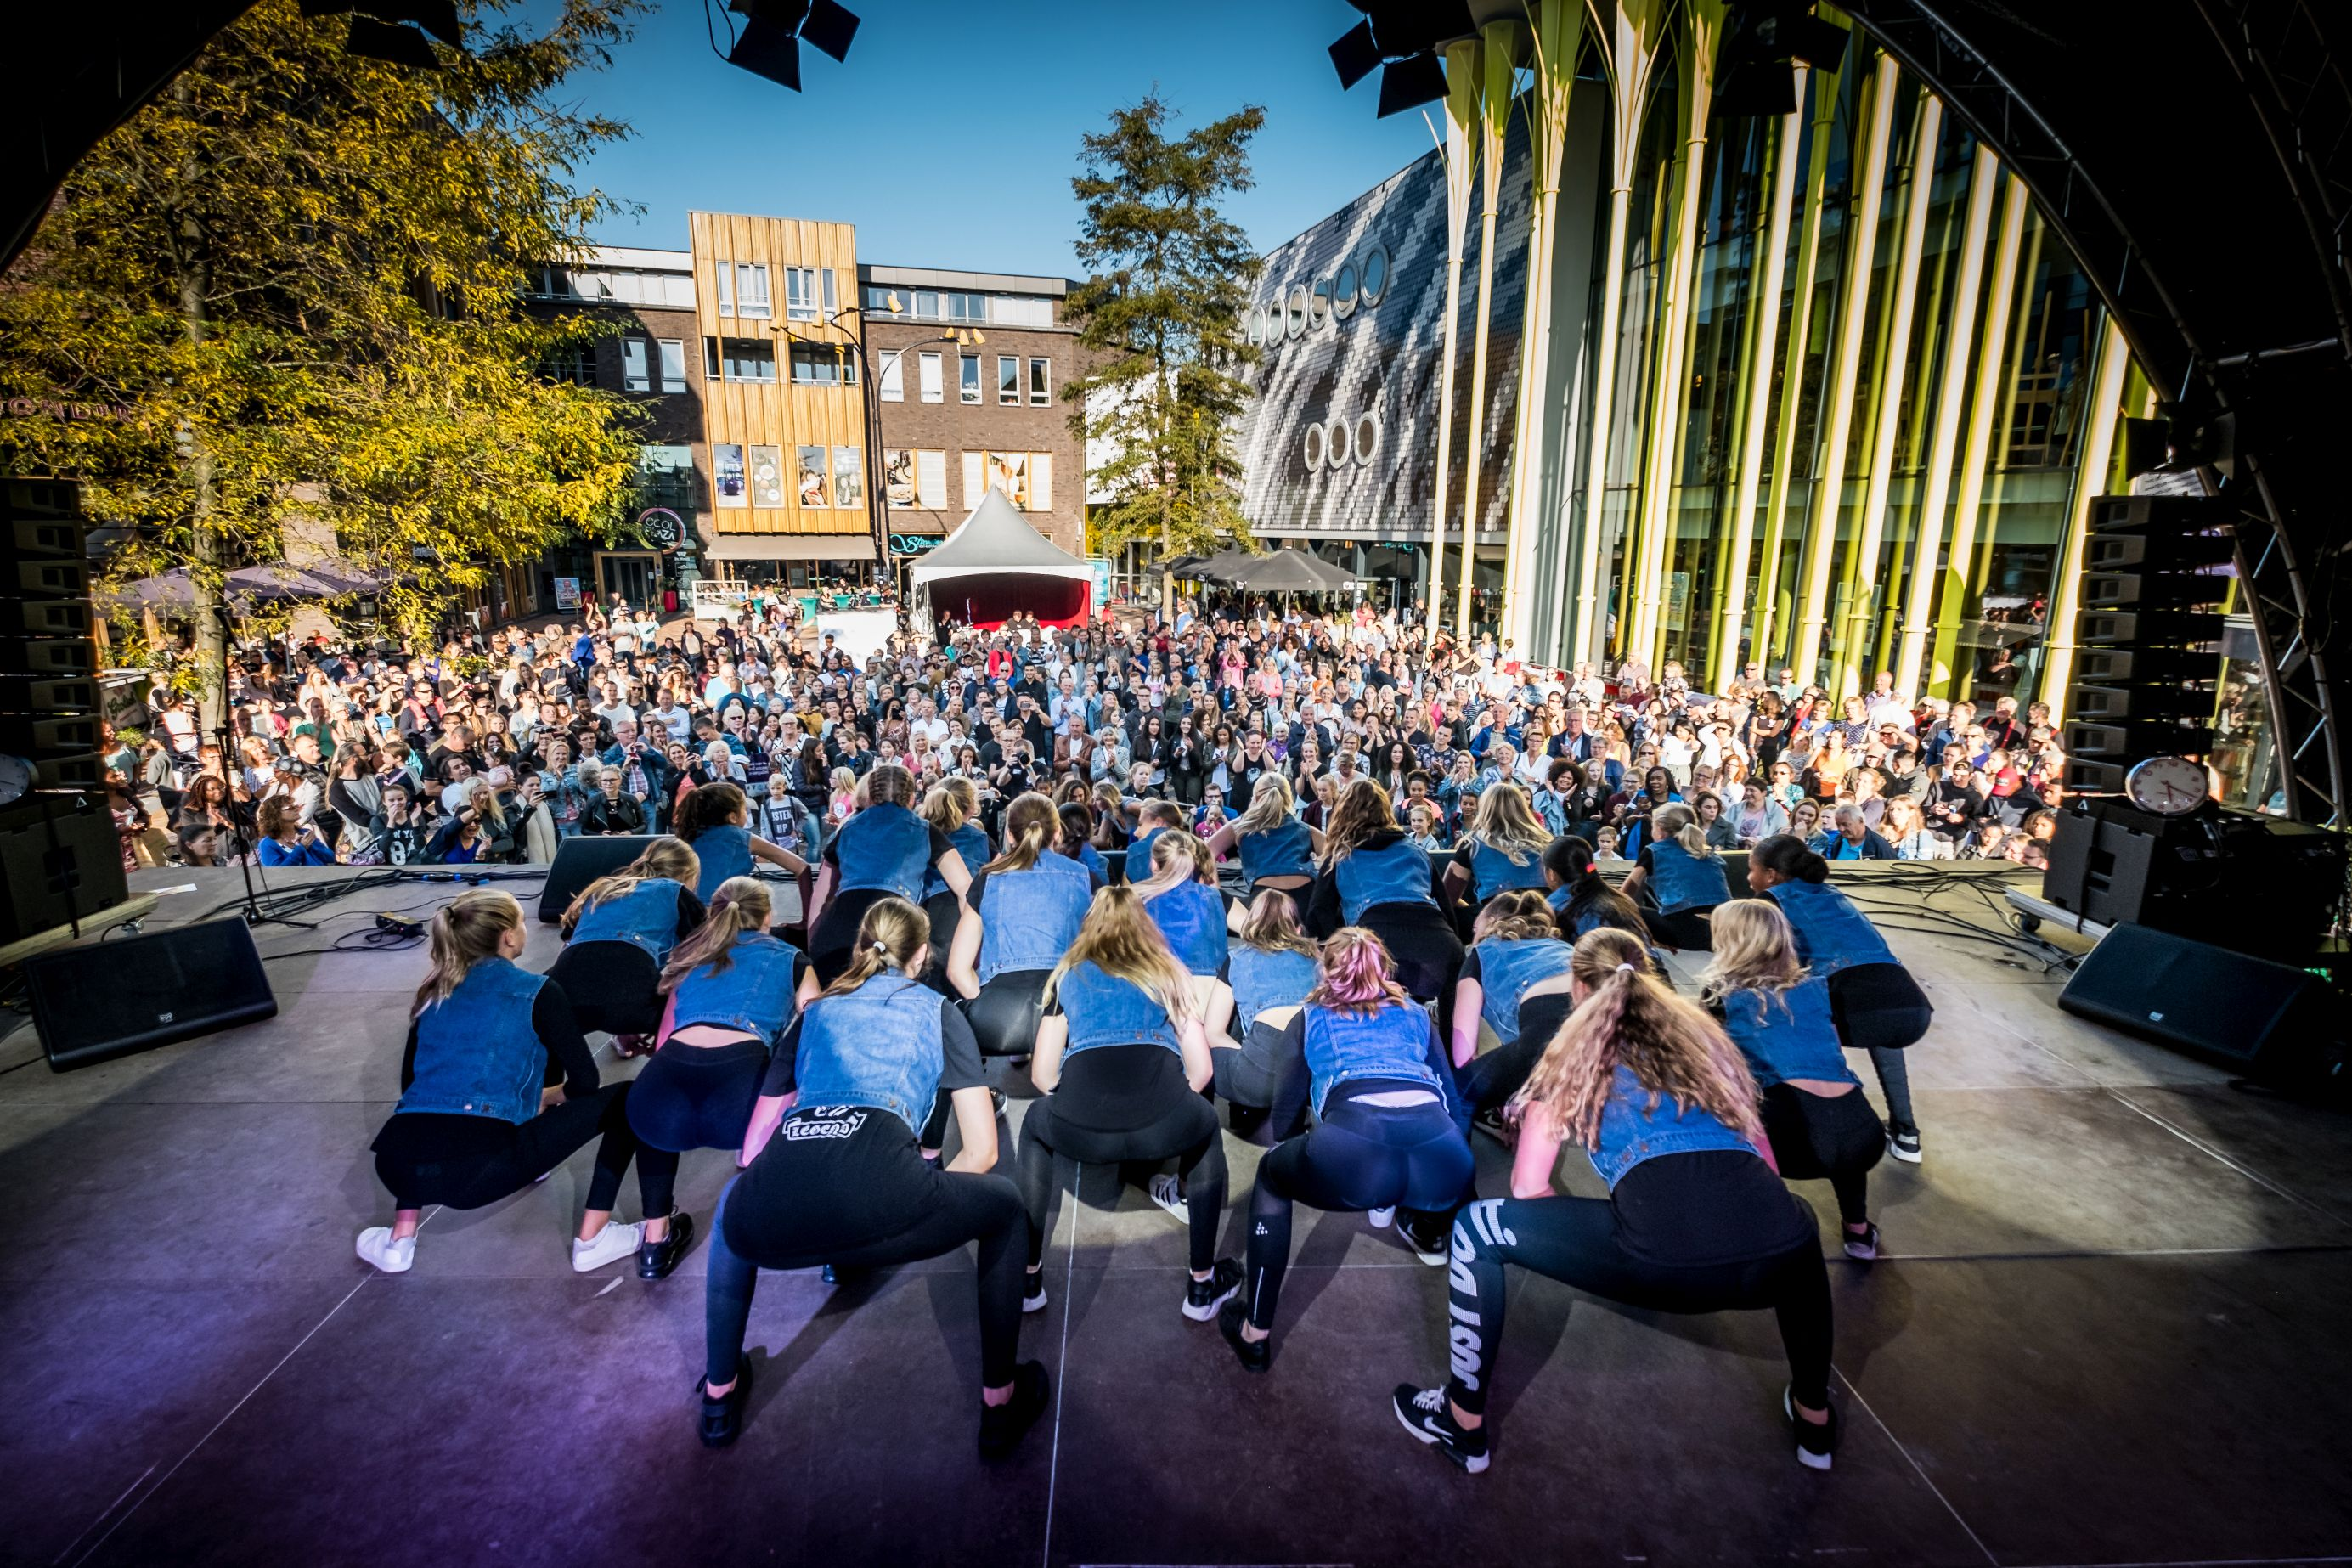 Inschrijving Coolpleinfestival 2018 geopend. (foto Richard Rood)